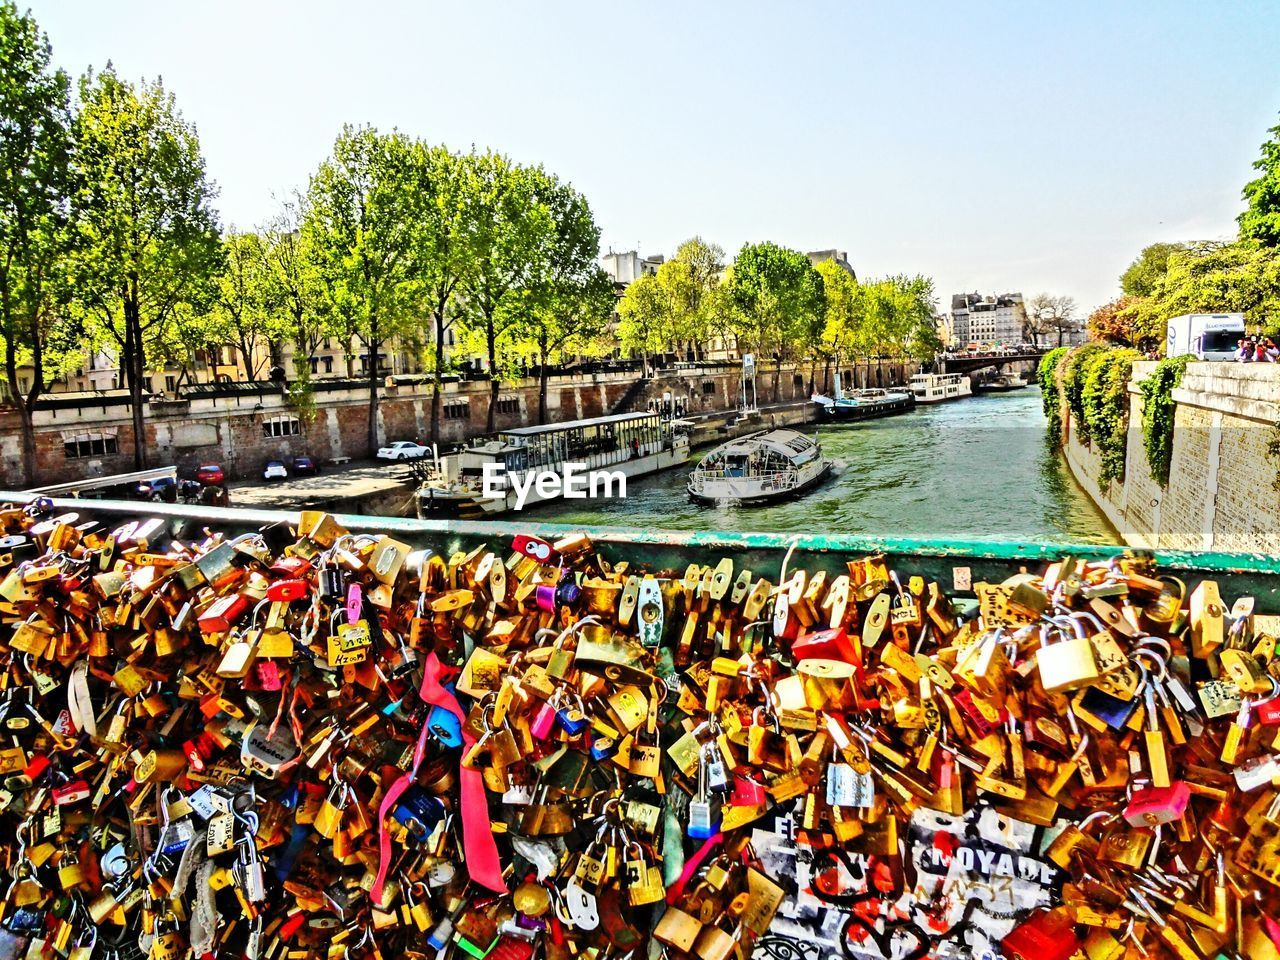 padlock, love lock, abundance, railing, love, day, bridge - man made structure, lock, tree, architecture, outdoors, hope, water, clear sky, built structure, river, large group of objects, hanging, no people, hope - concept, sky, building exterior